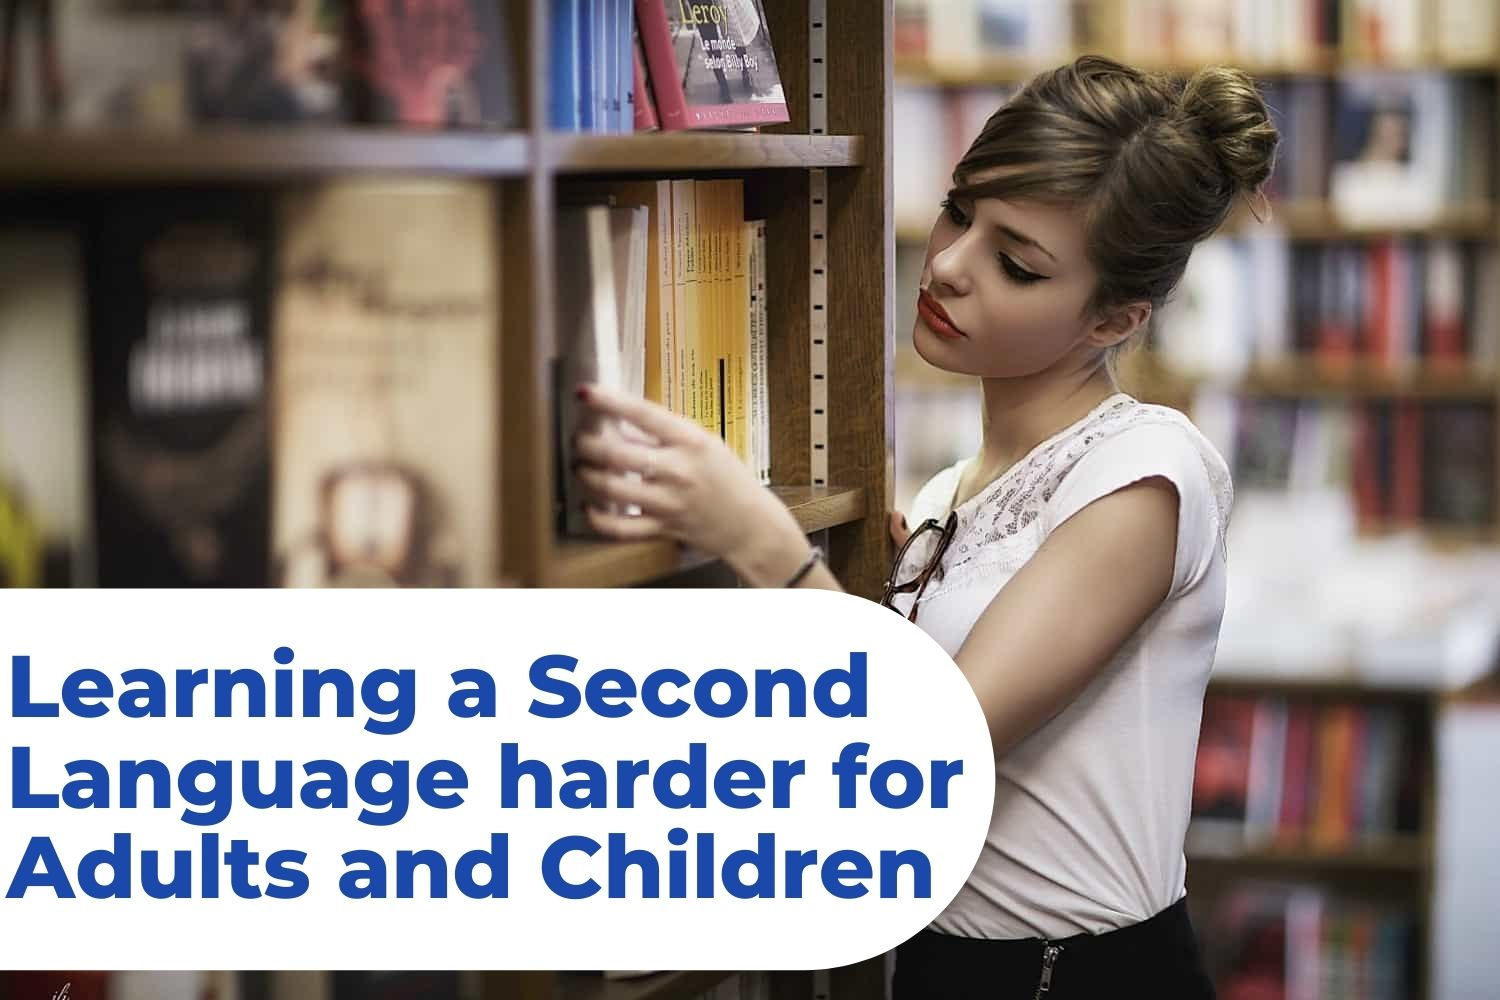 Why is Learning a Second Language harder for Adults than for Children